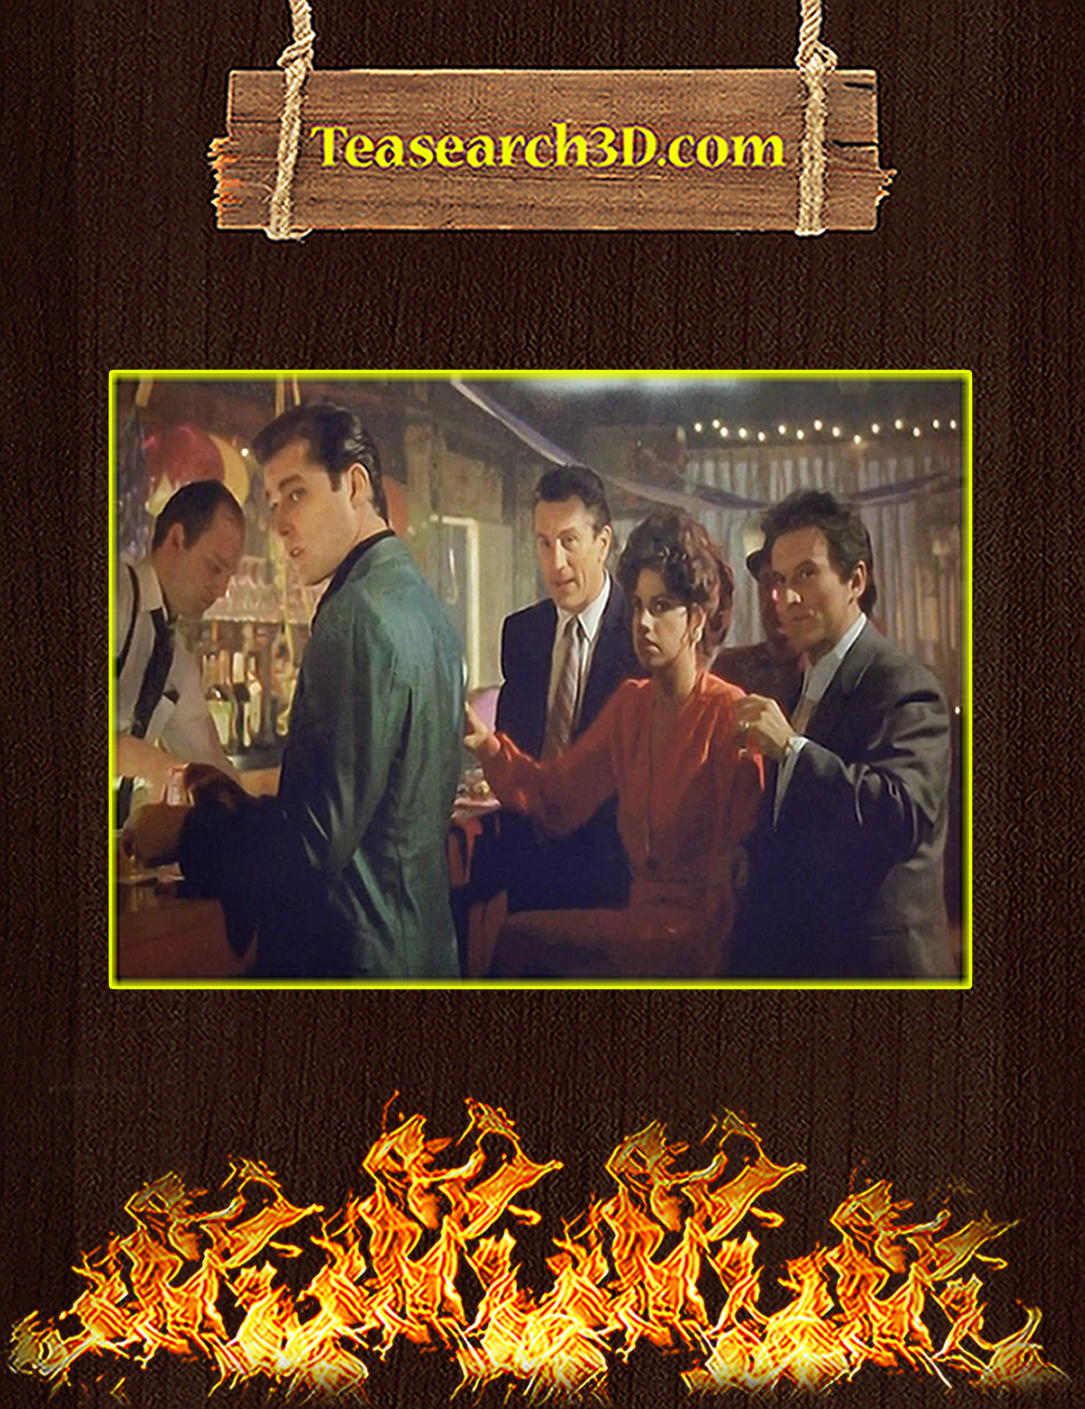 Goodfellas poster A2